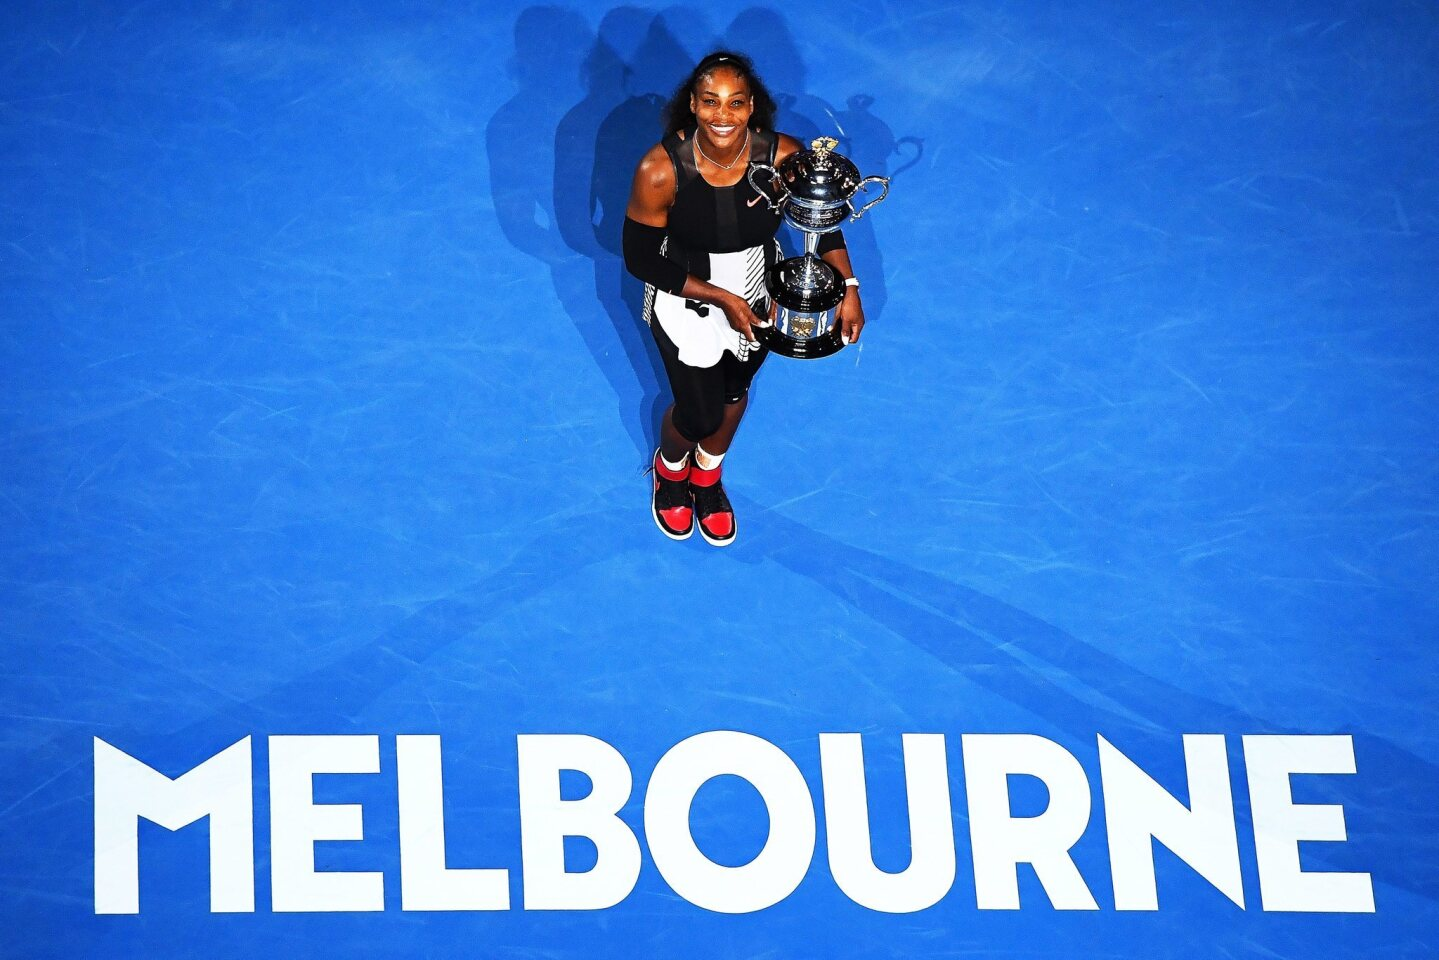 La tenista Serena Williams posa con el trofeo que la acredita monarca del Australian Open Grand Slam.